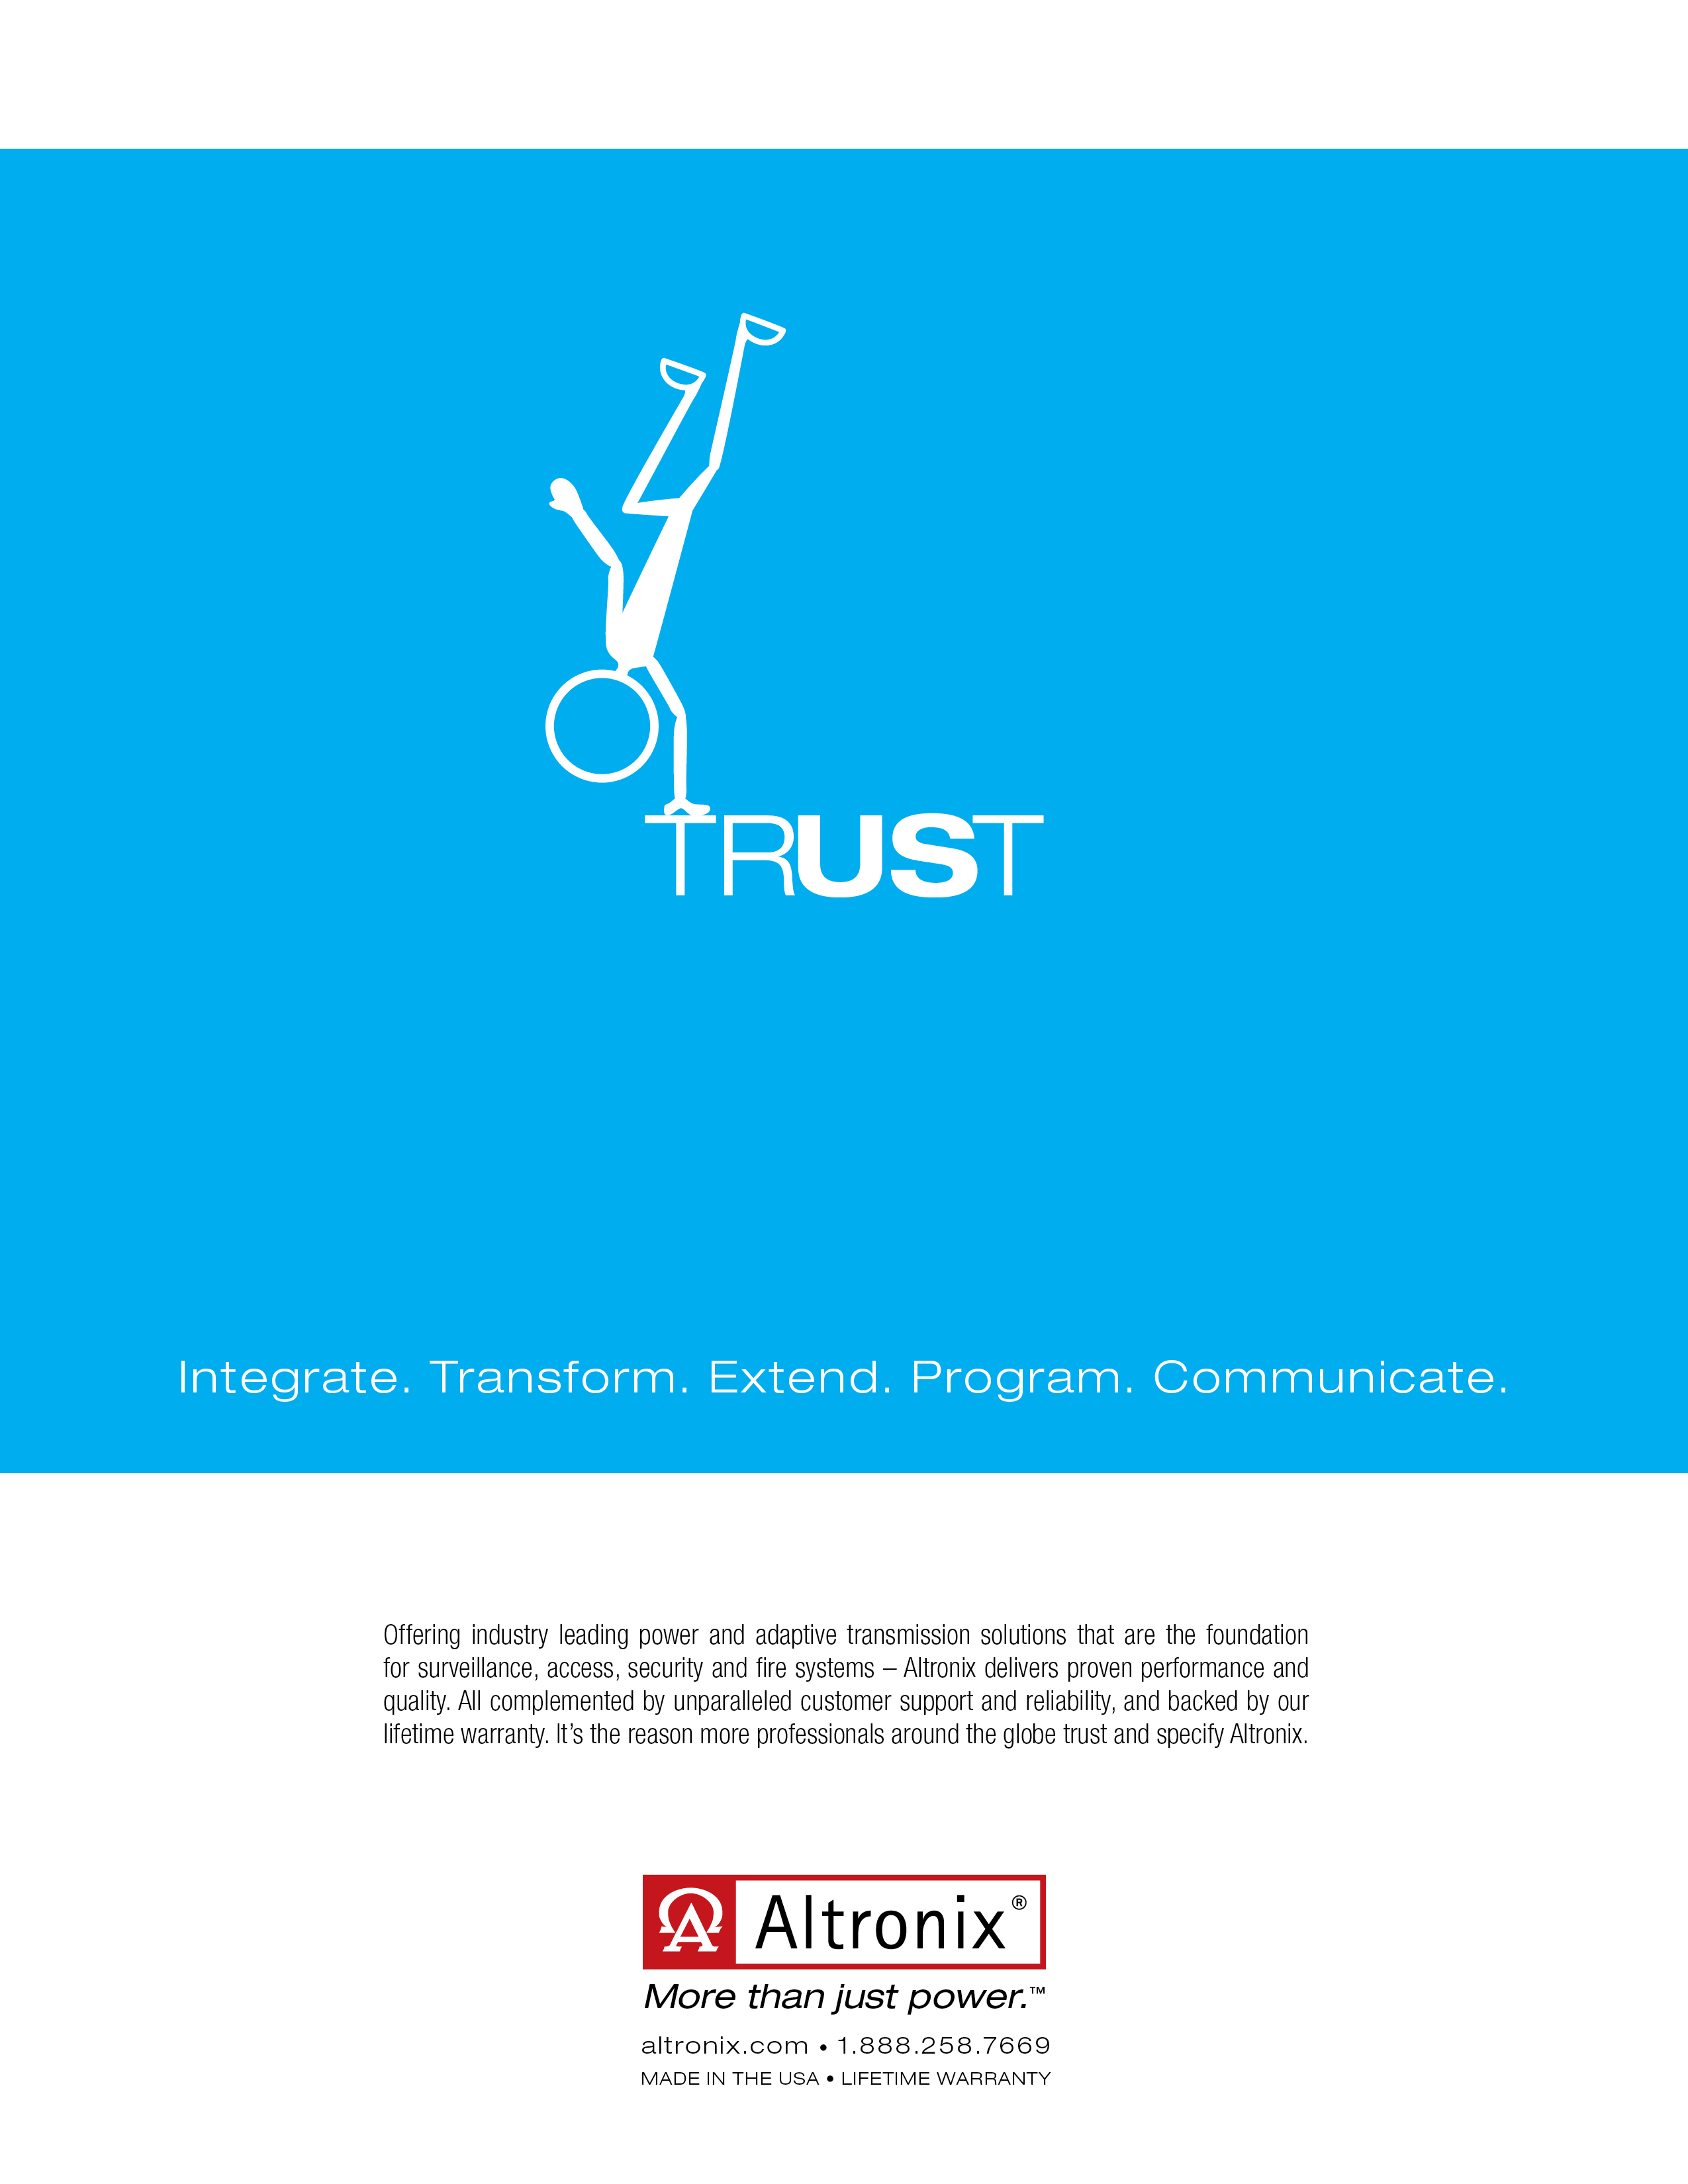 Altronix Trust Corporate Ad